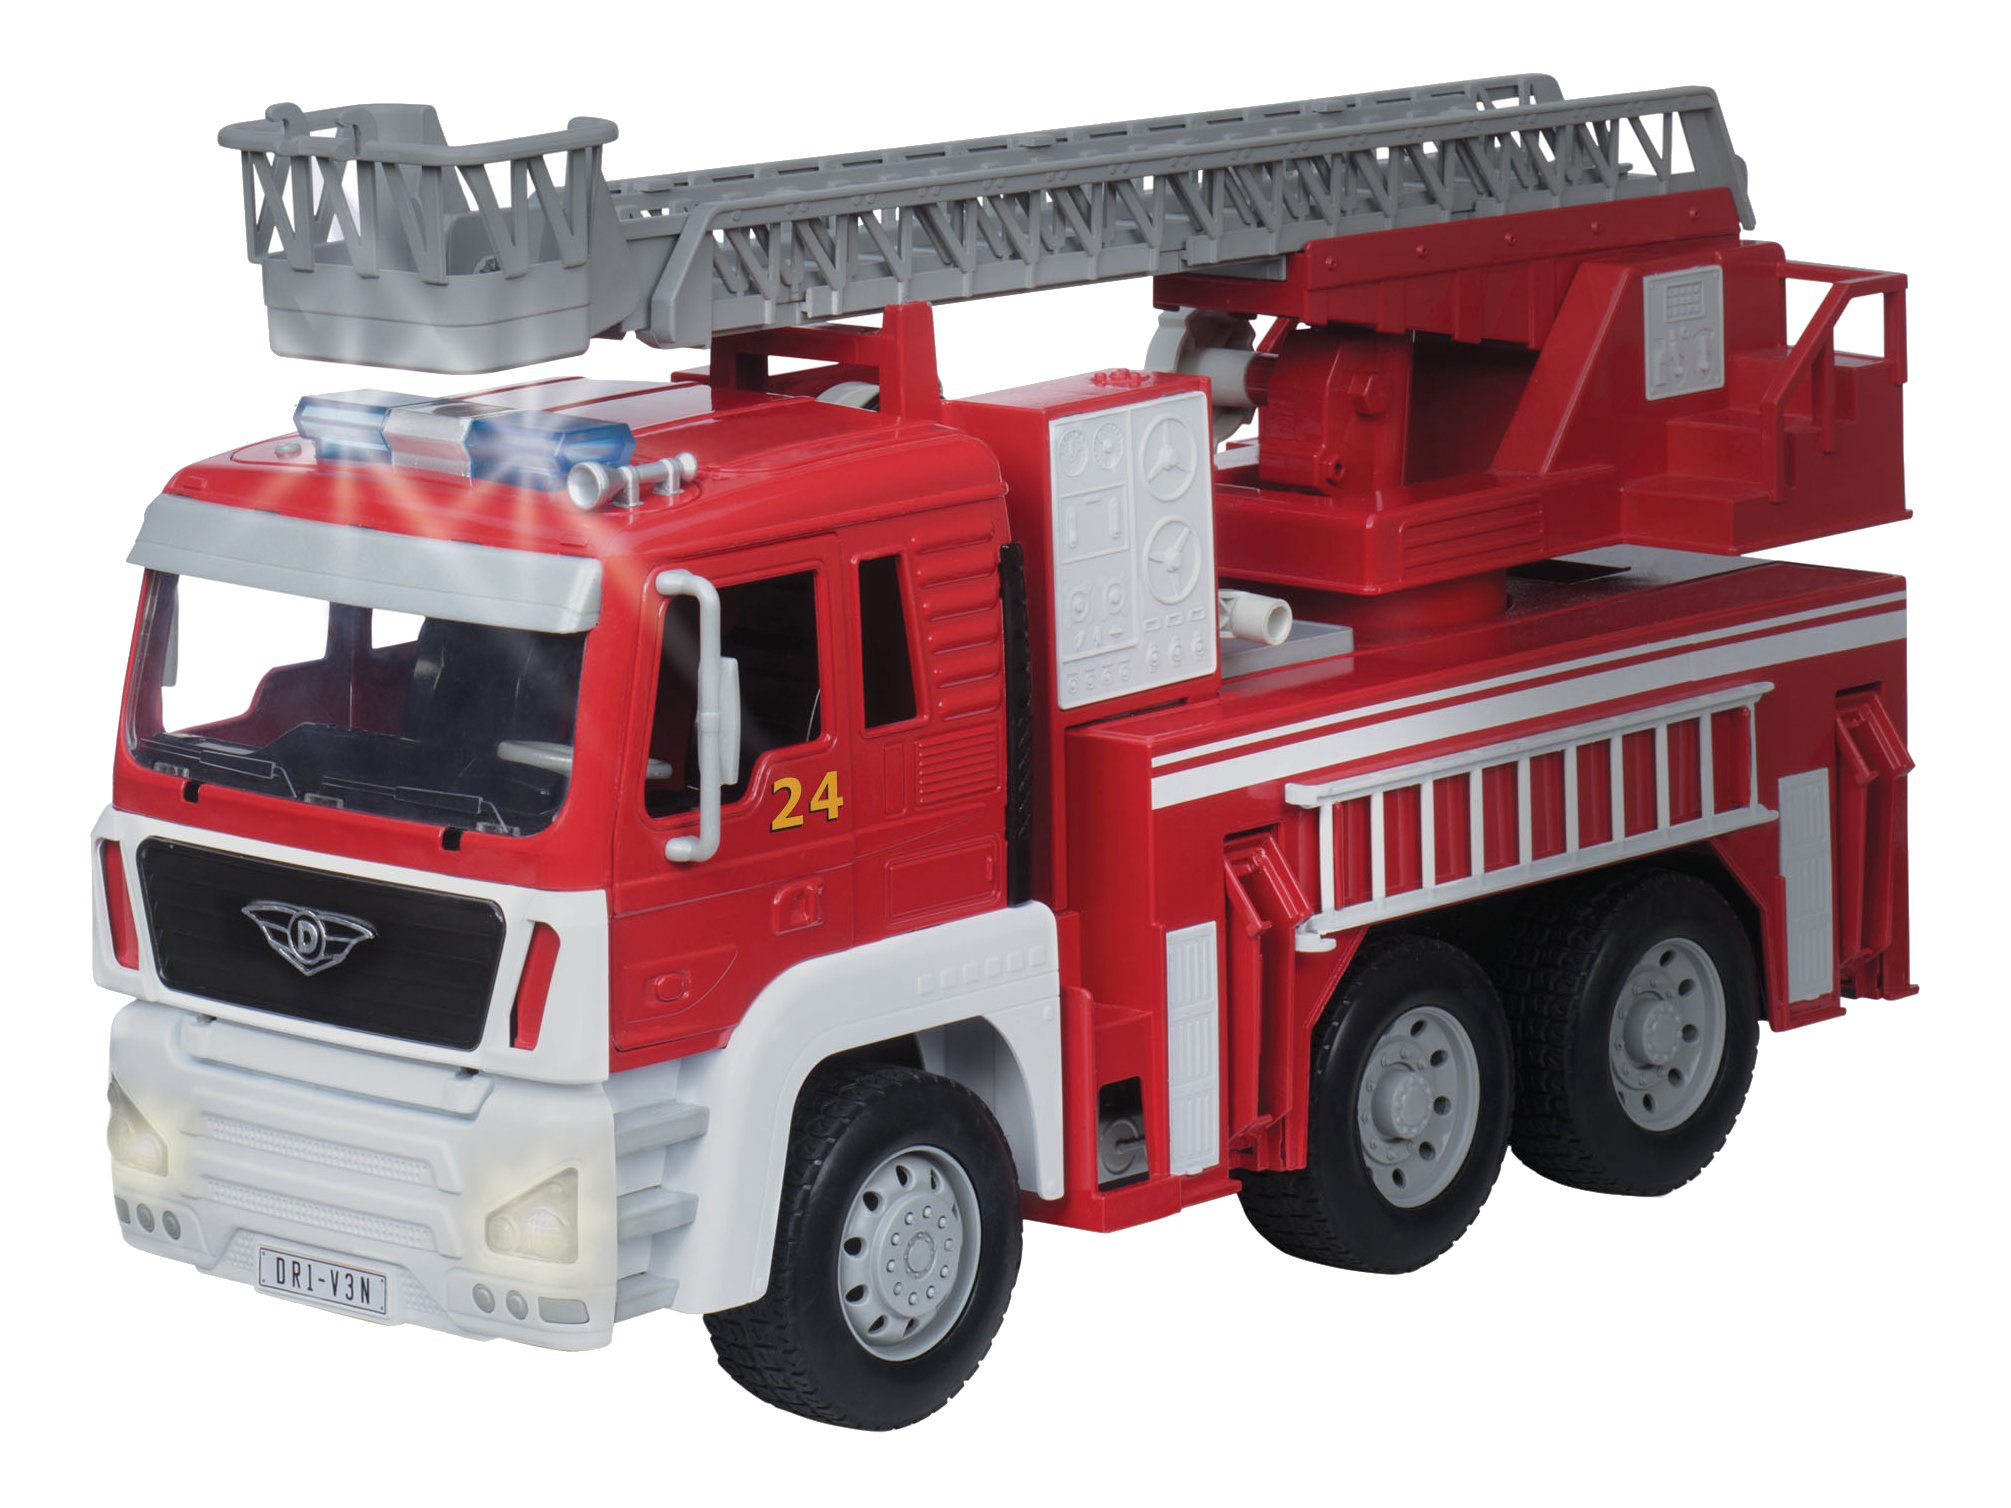 Driven by Battat - Fire Truck - Toy Vehicle